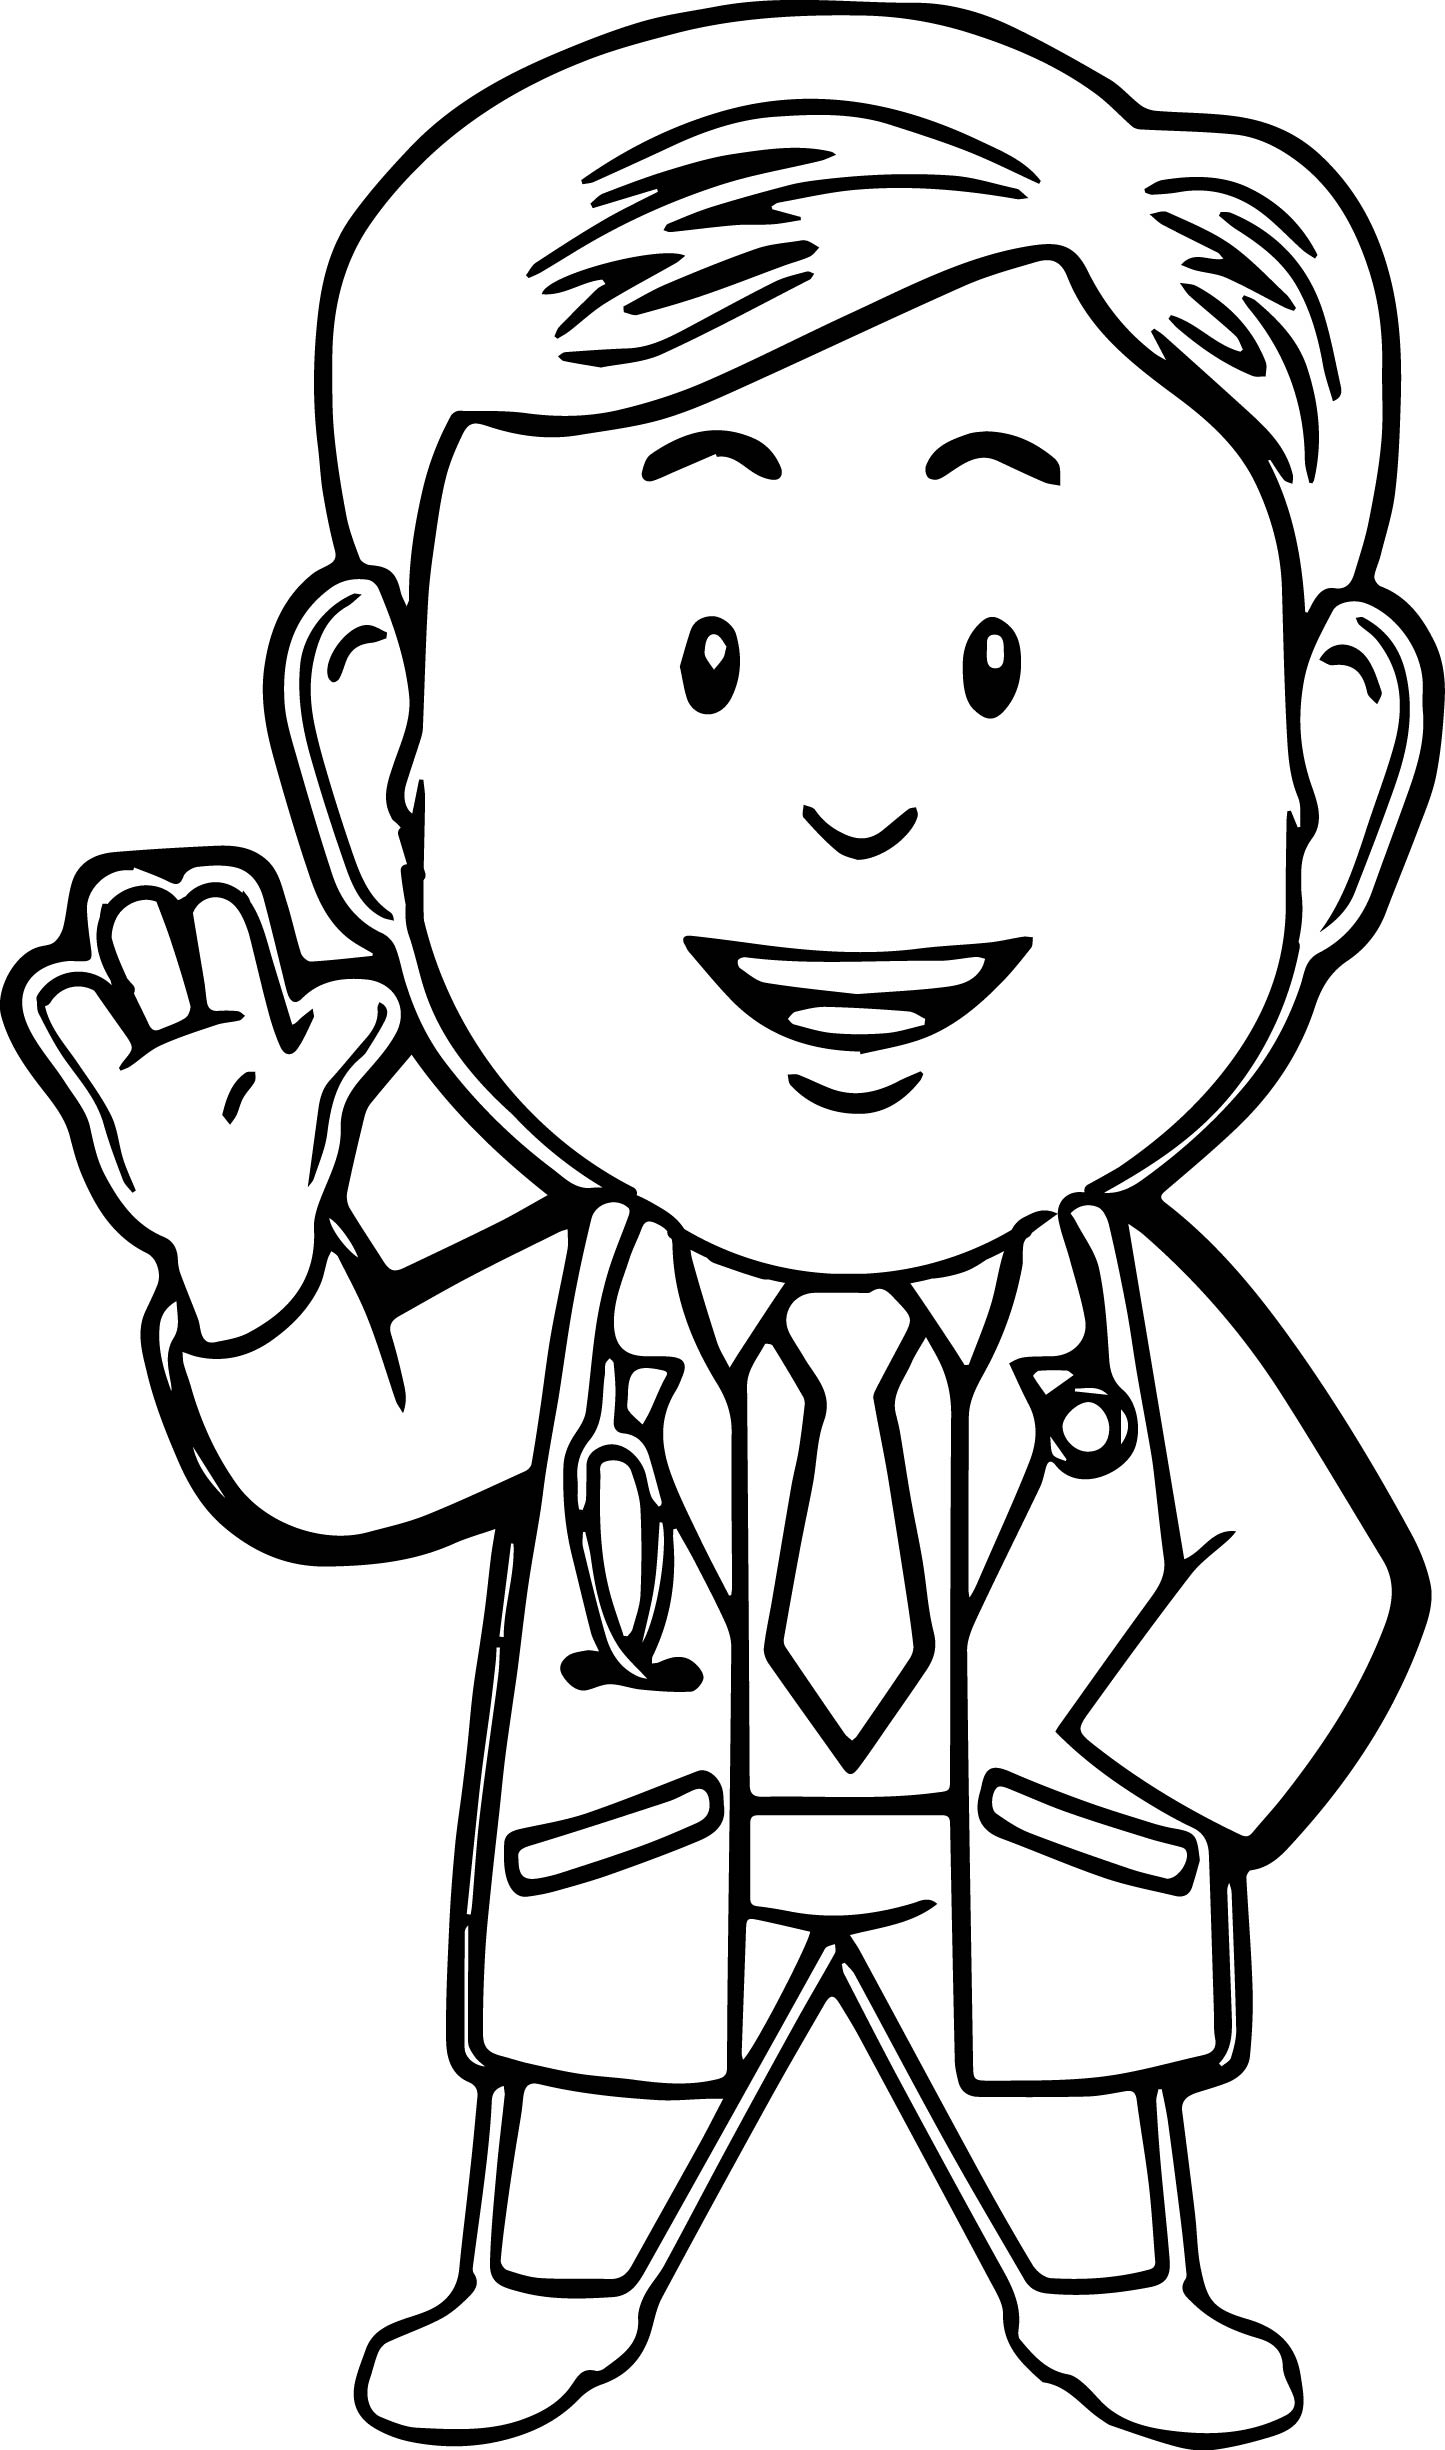 kid doctor coloring pages - photo#18